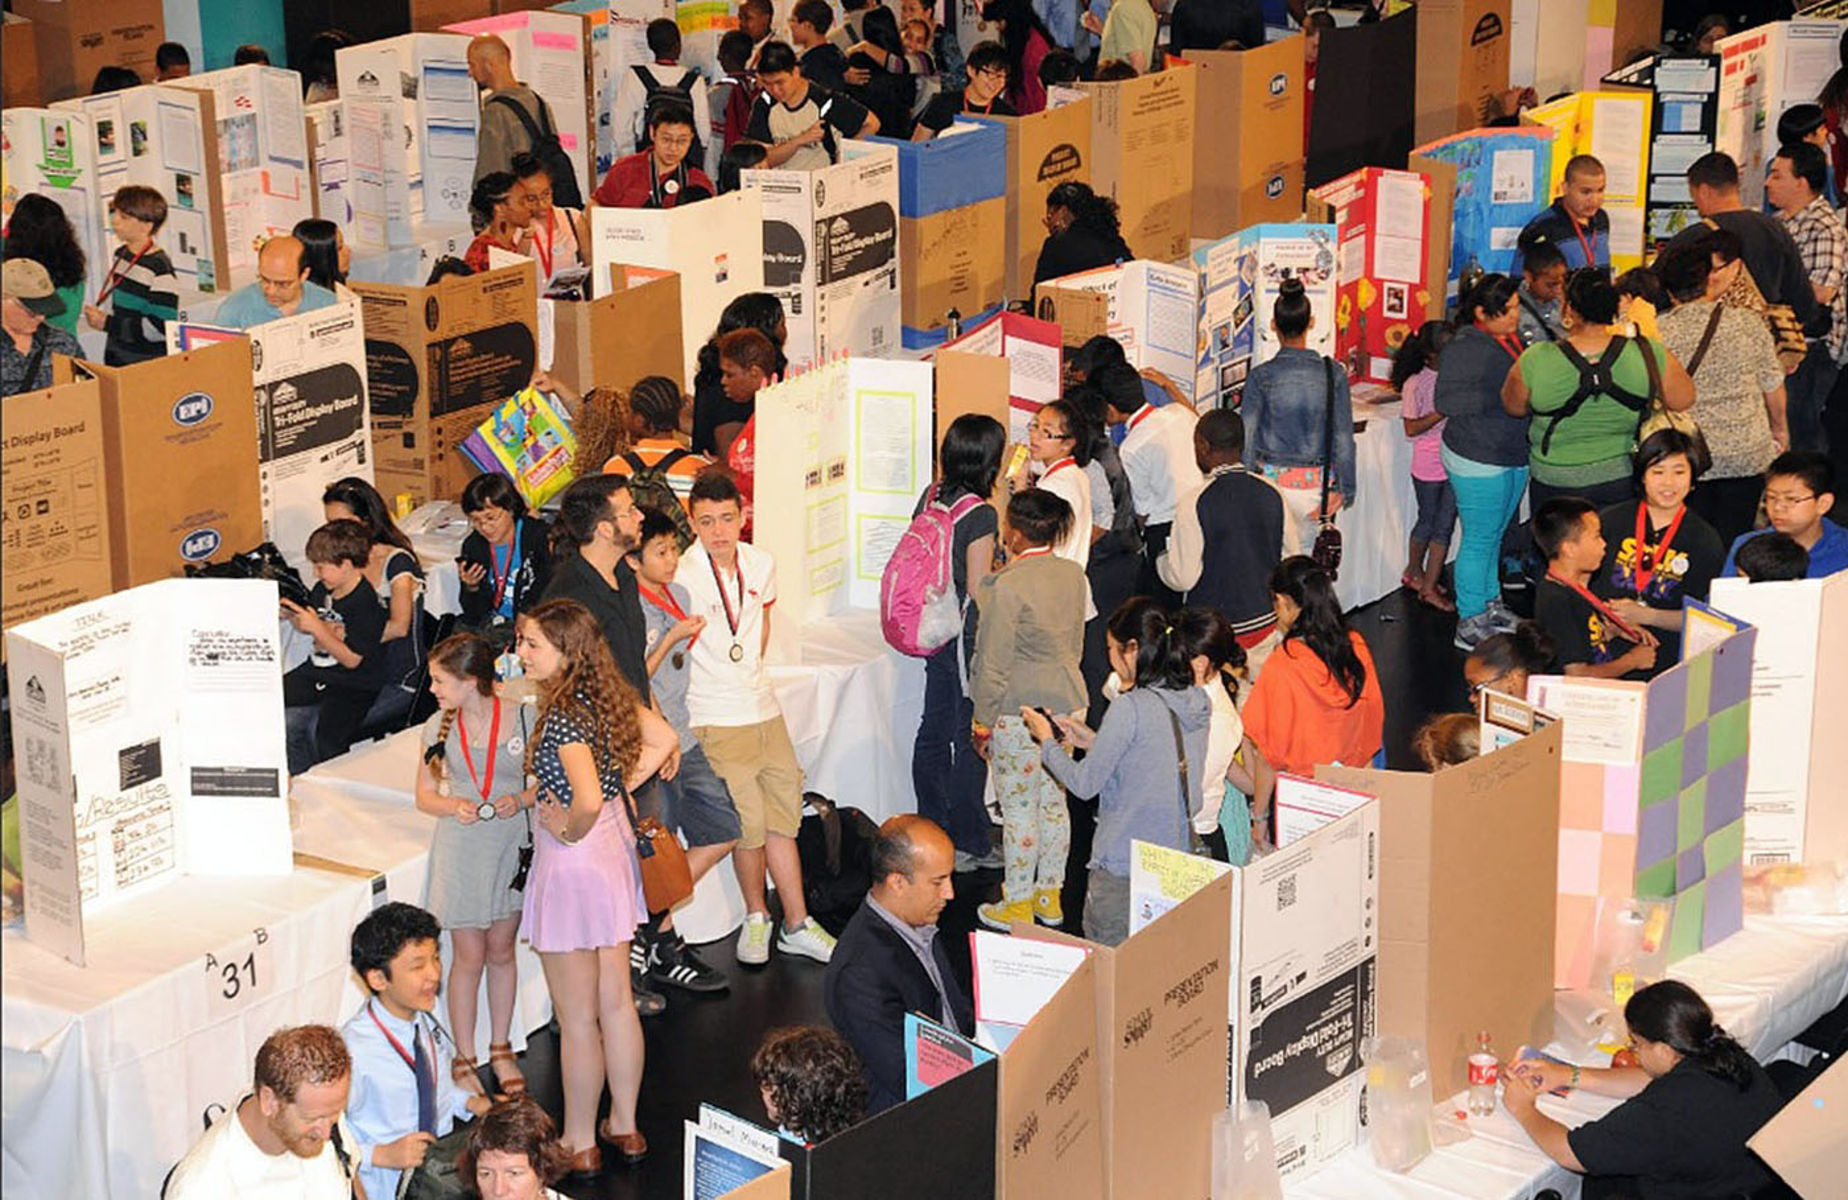 Open space with hundreds of students stand in front of cardboard backdrops created to illustrate each student's project.